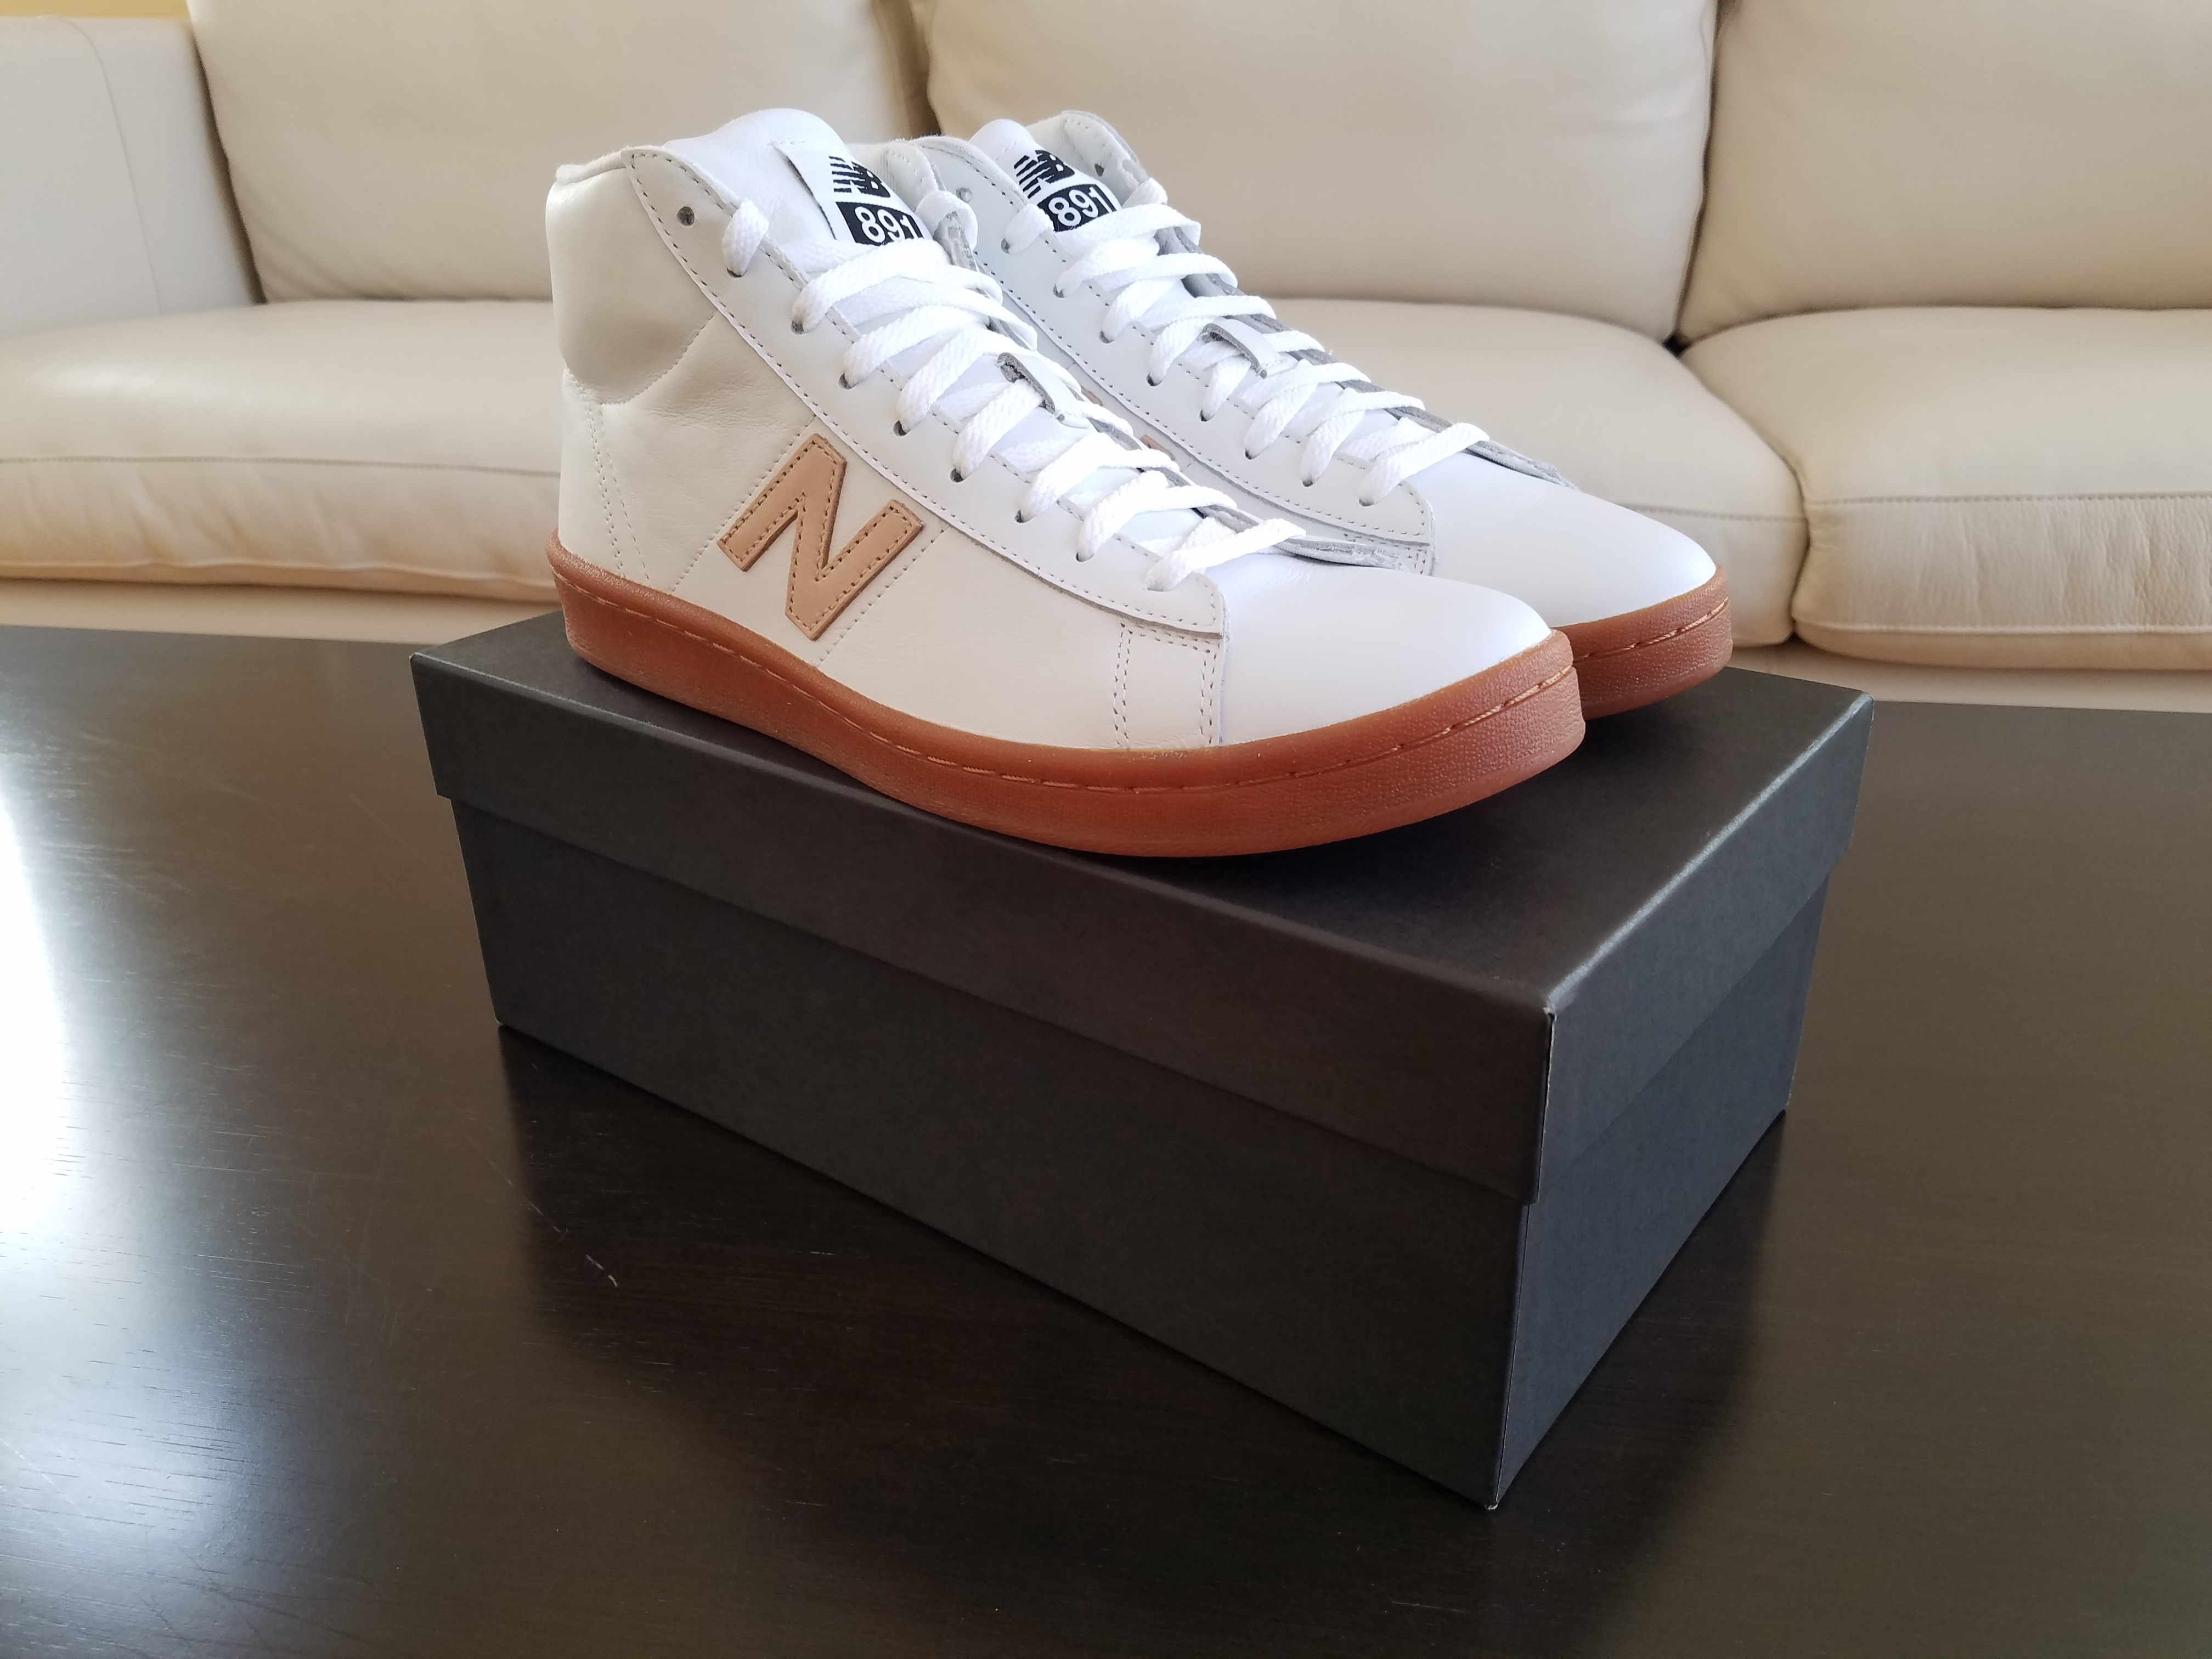 6905357bc8a8 New Balance × J.Crew ×. 891 Leather High-Top Sneakers